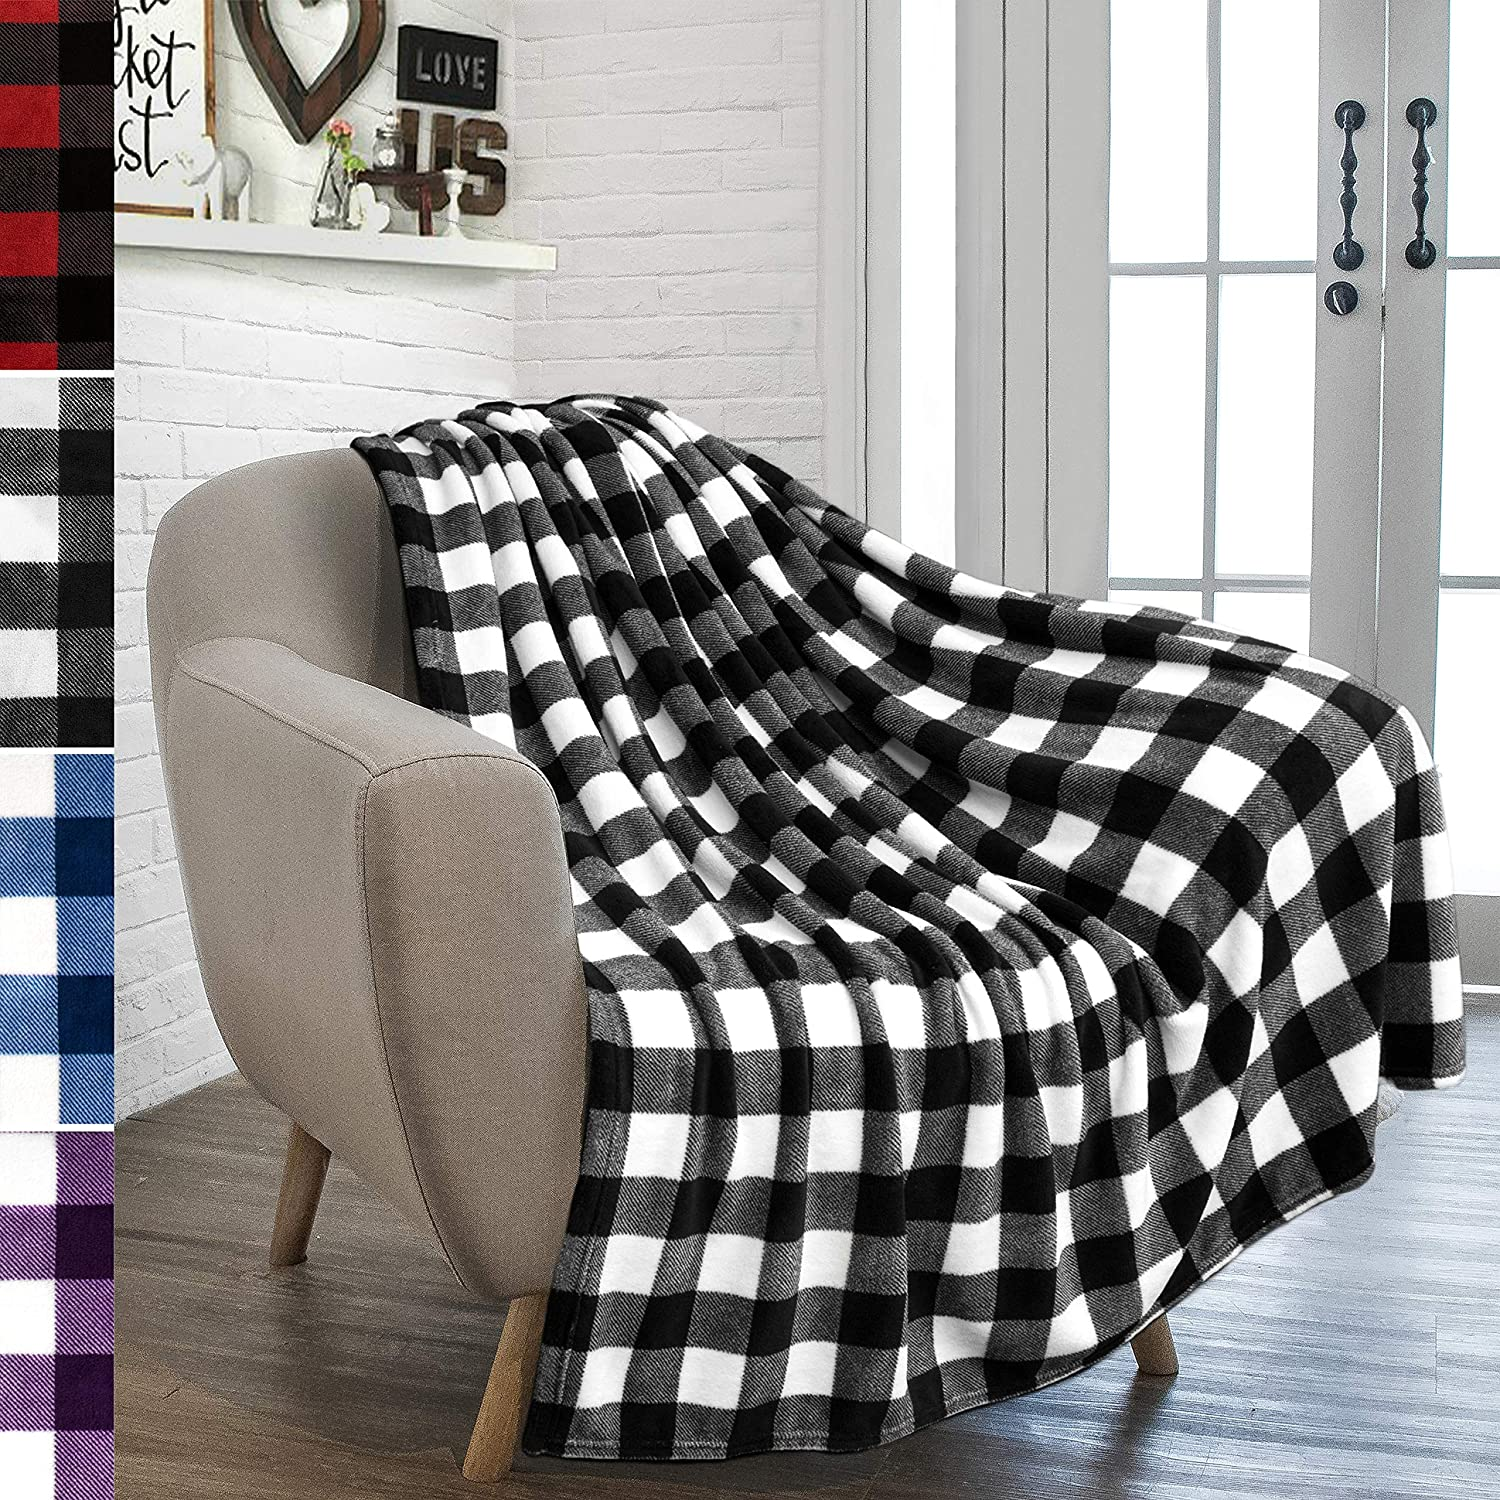 PAVILIA Buffalo Plaid Throw Blanket Soft National products Couch Flanne for Classic Sofa